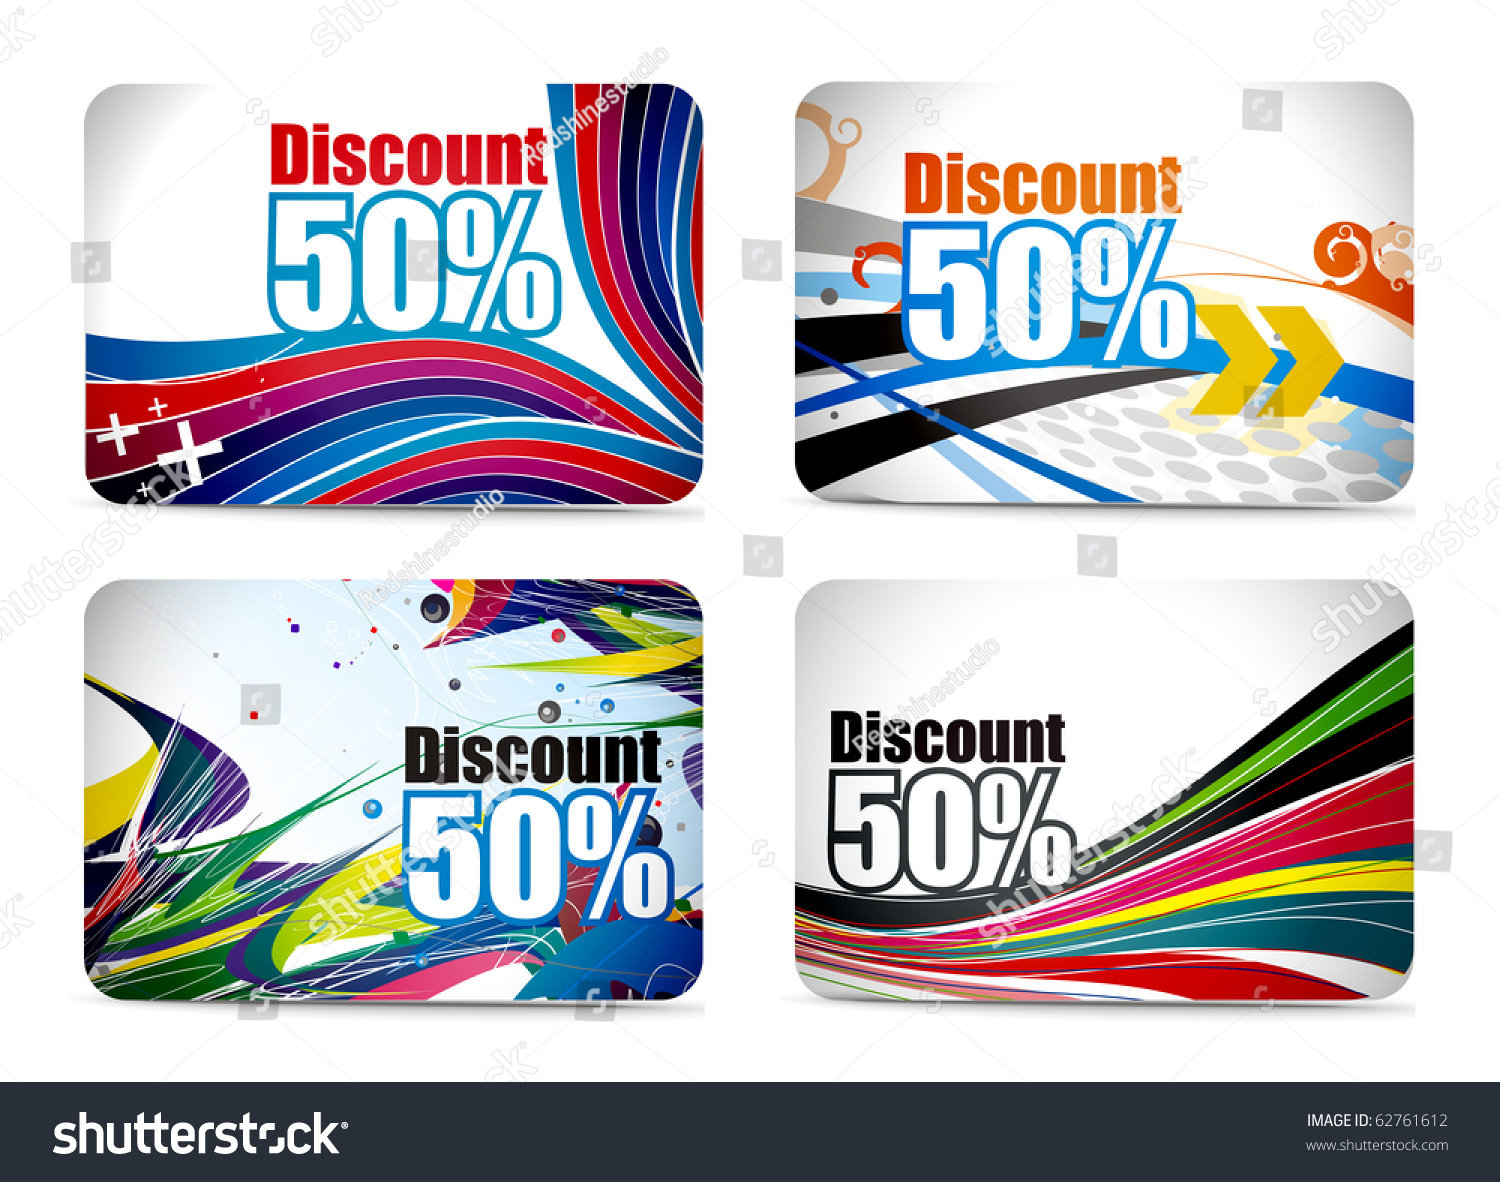 Design of discount card - Discount Card Set Design Vector Illustration Preview Save To A Lightbox